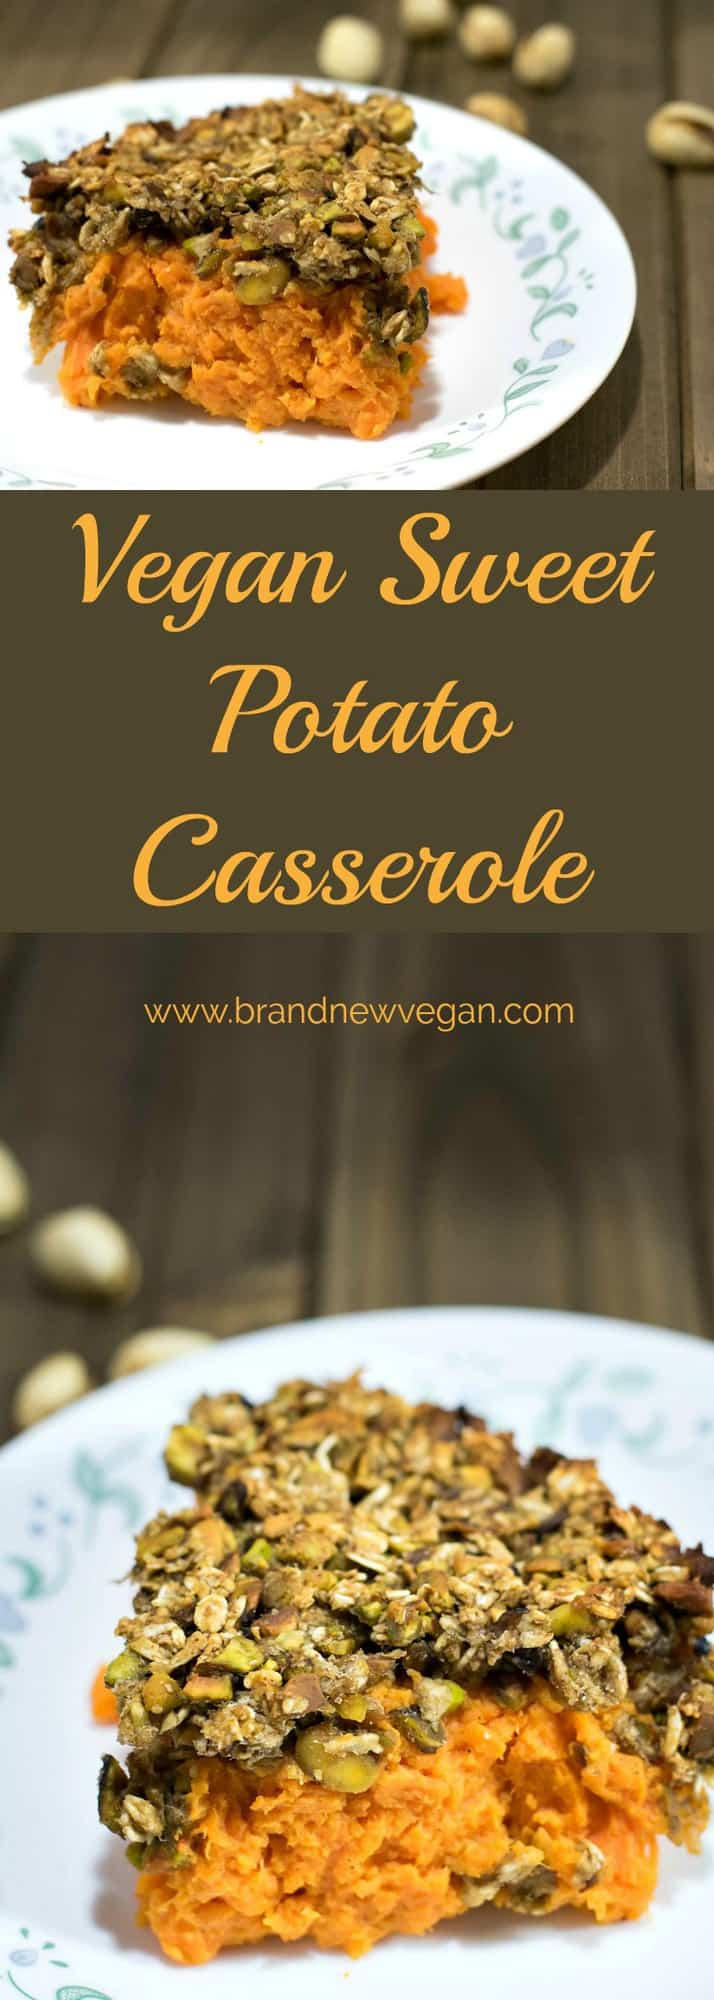 This Vegan Sweet Potato Casserole will definitely grace my table this holiday season. No butter, no oil, no marshmallows, just pure sweet potato happiness.